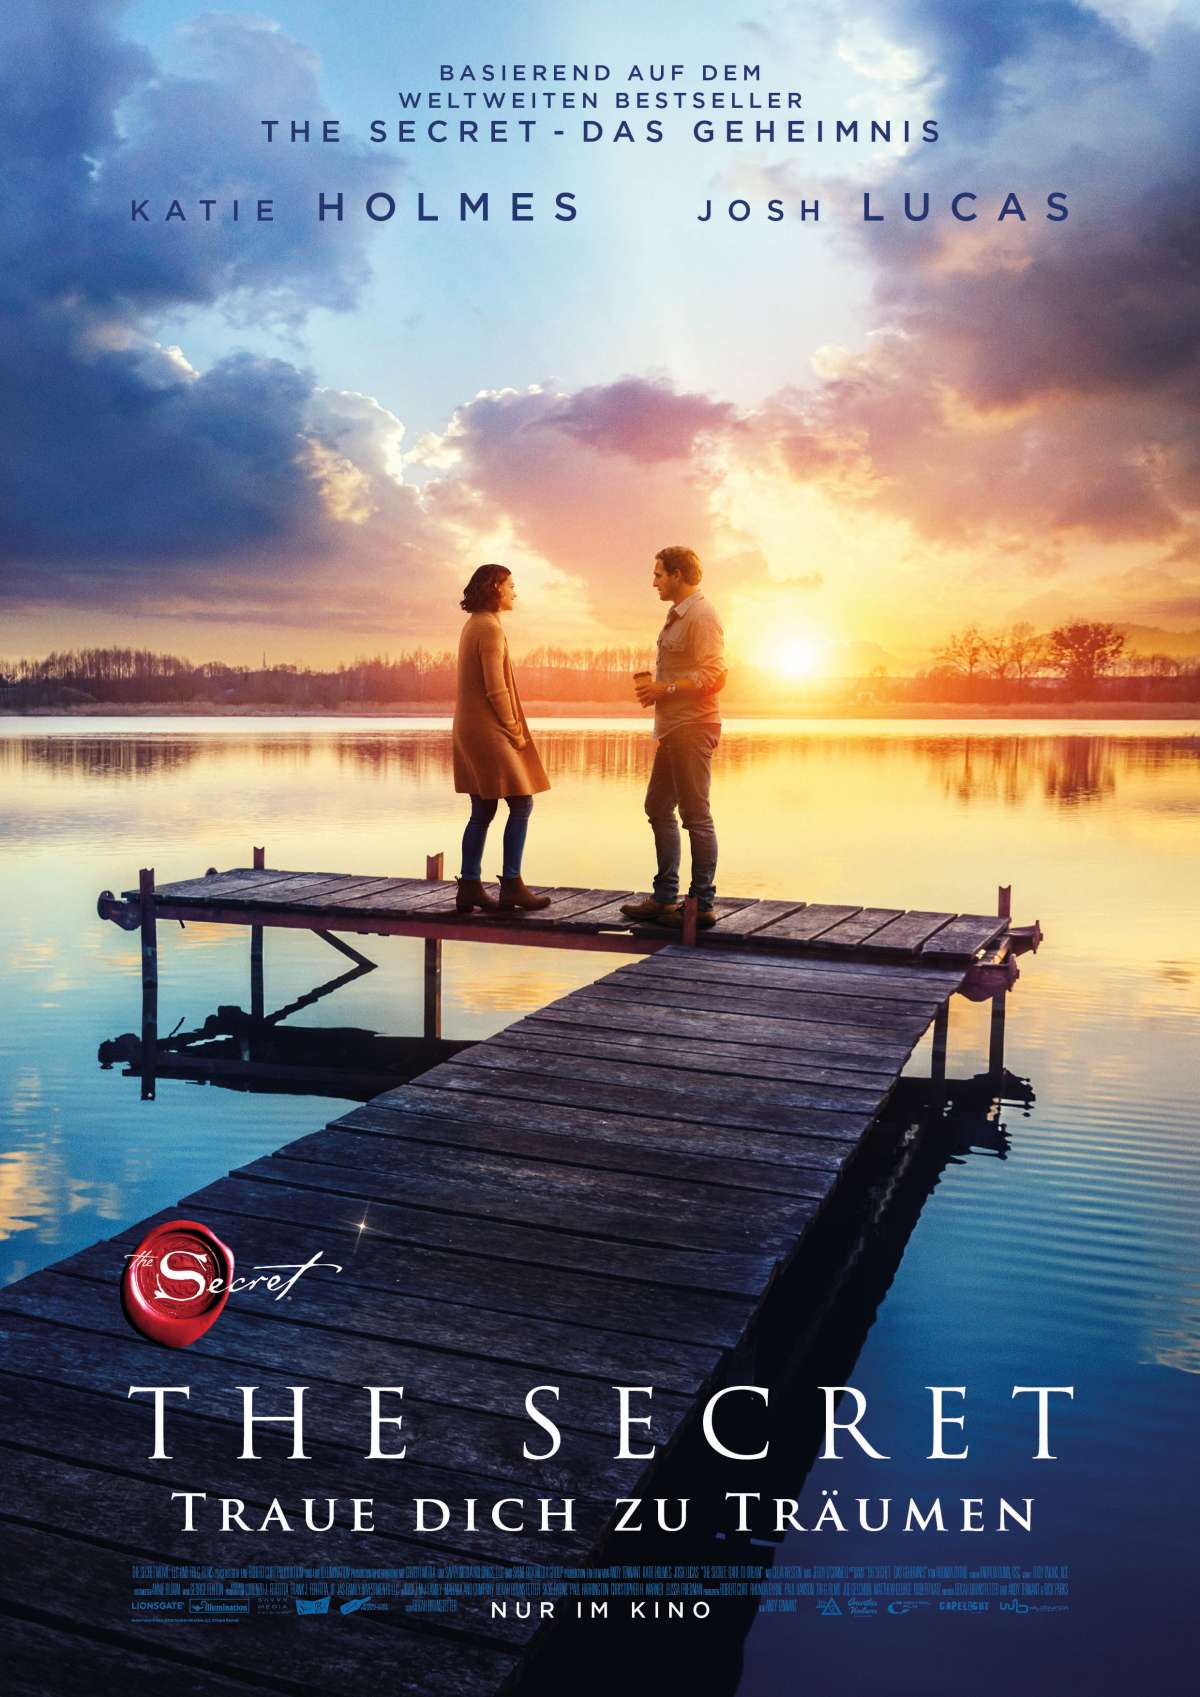 The Secret - Traue Dich zu träumen - Cineplex  - Paderborn